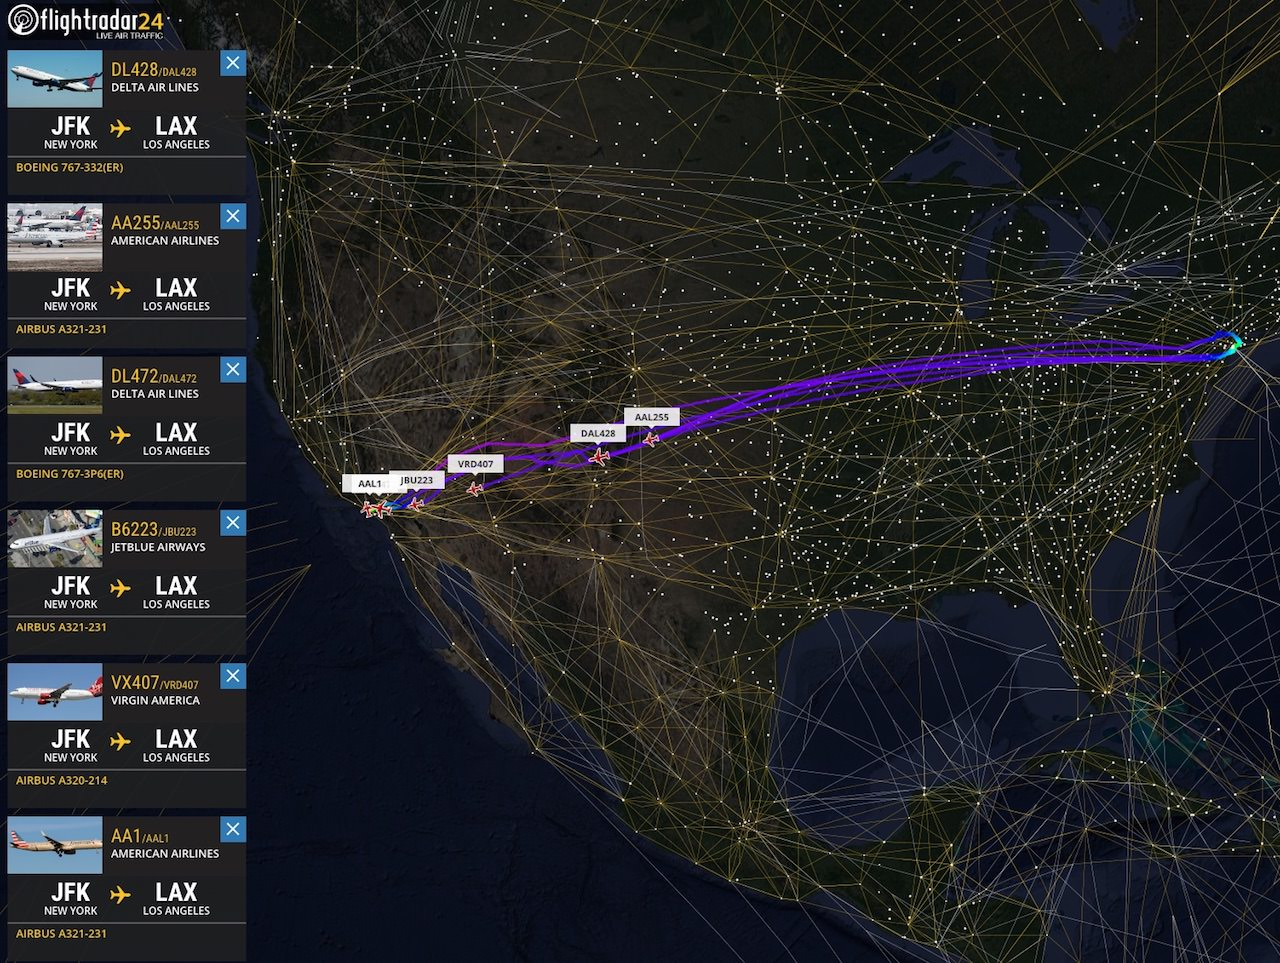 Flights Follow Airways And Pass Over Waypoints En Route To From New York To Los Angeles Generally Following A Great Circle Route